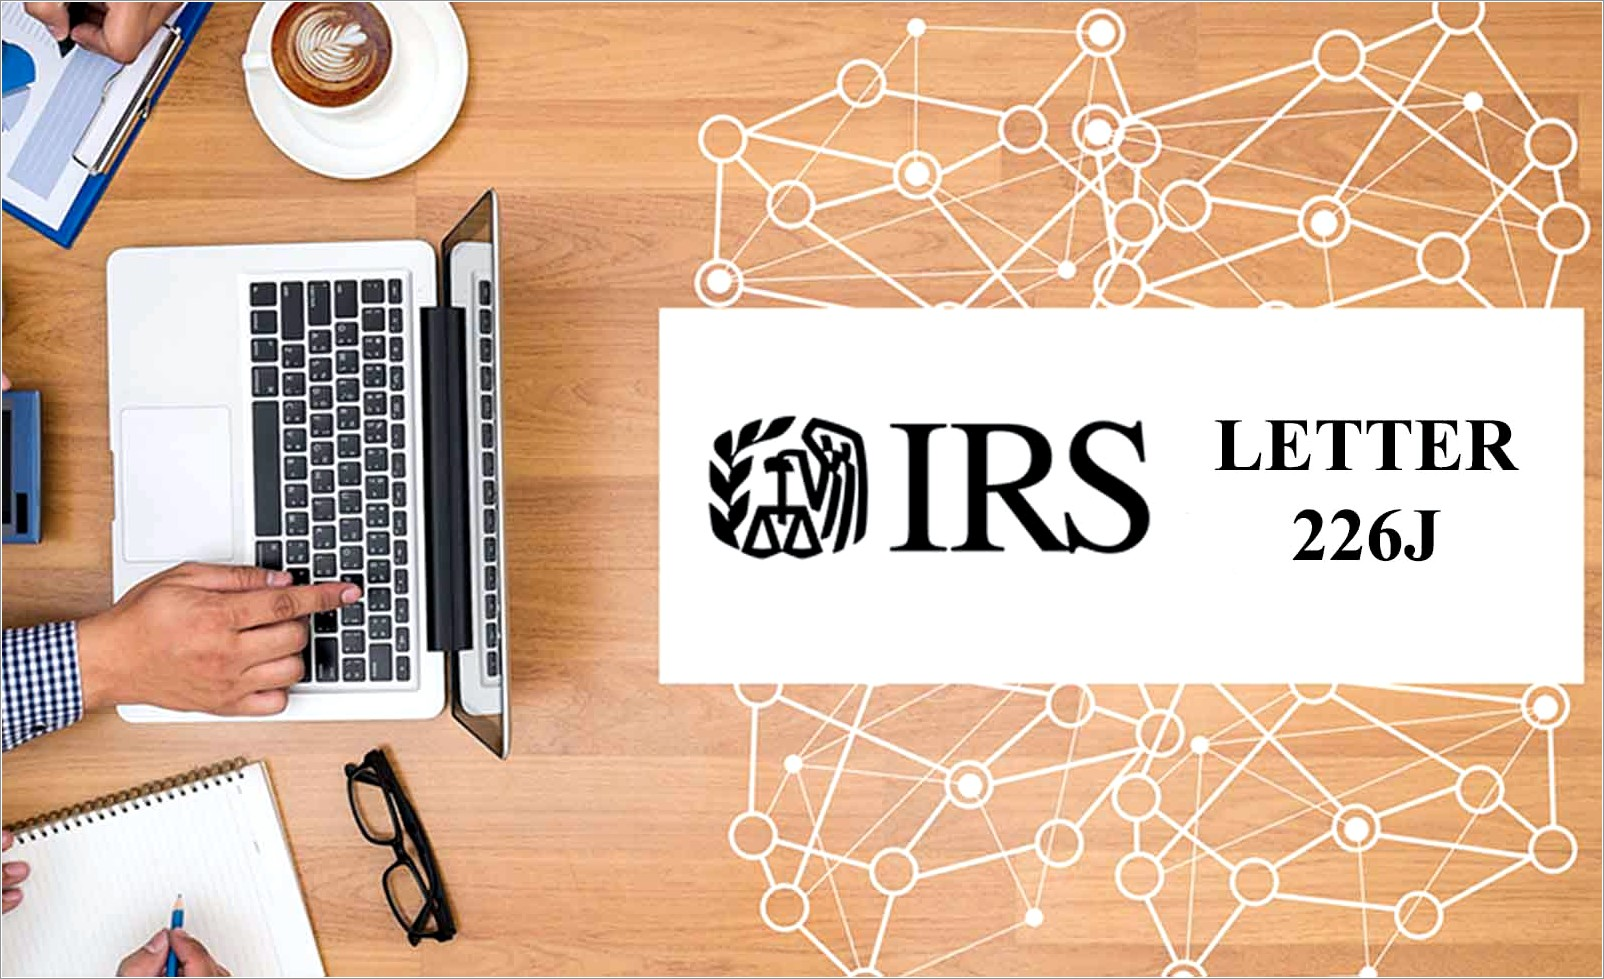 Irs Letter 226j Extension